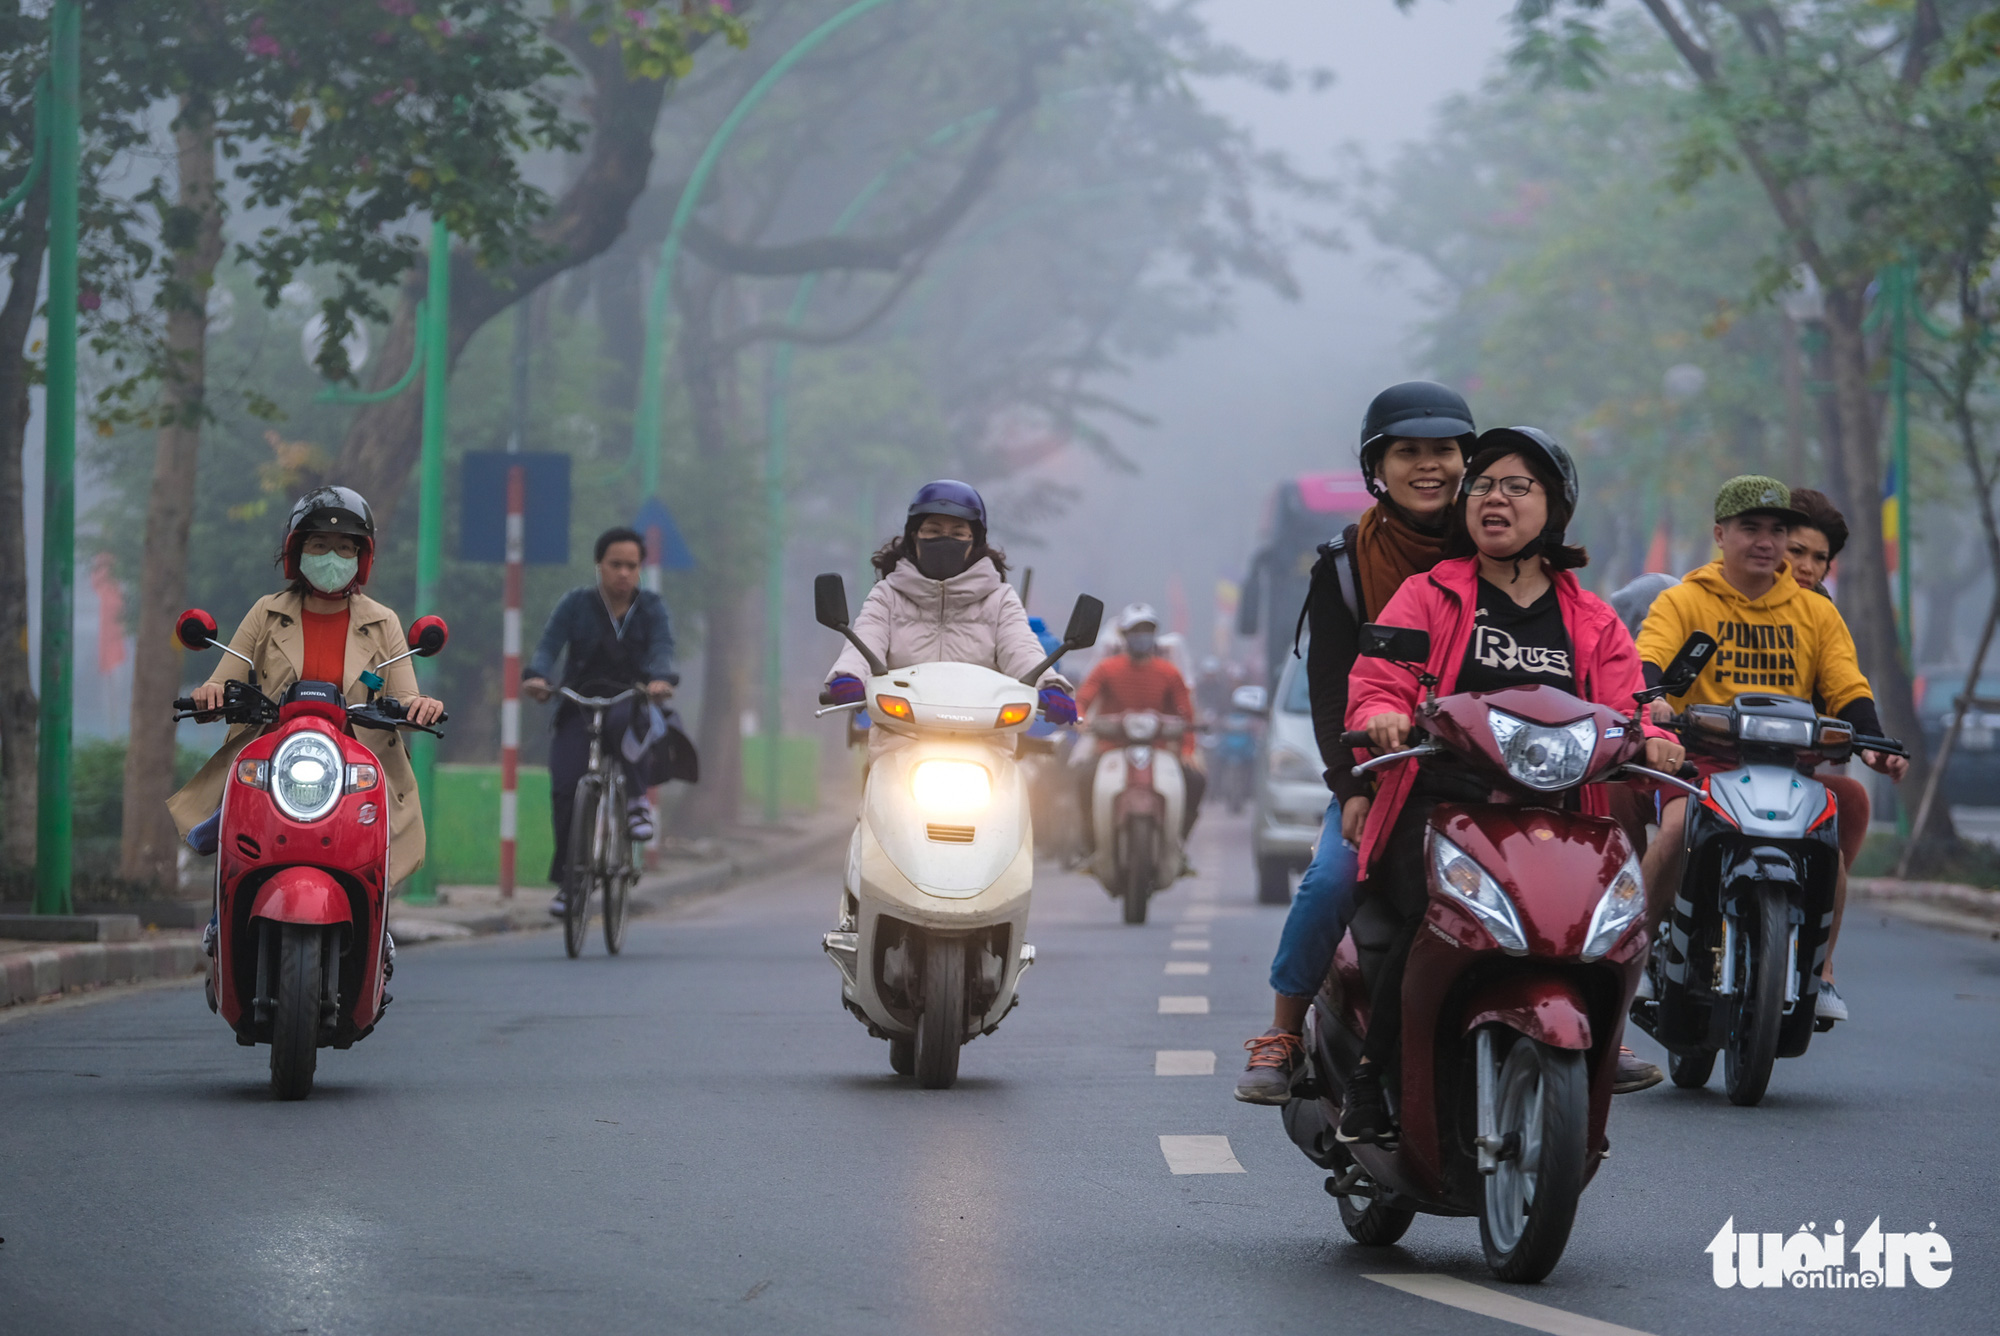 Commuters turn on their headlights in the foggy weather in Hanoi on December 24, 2019.